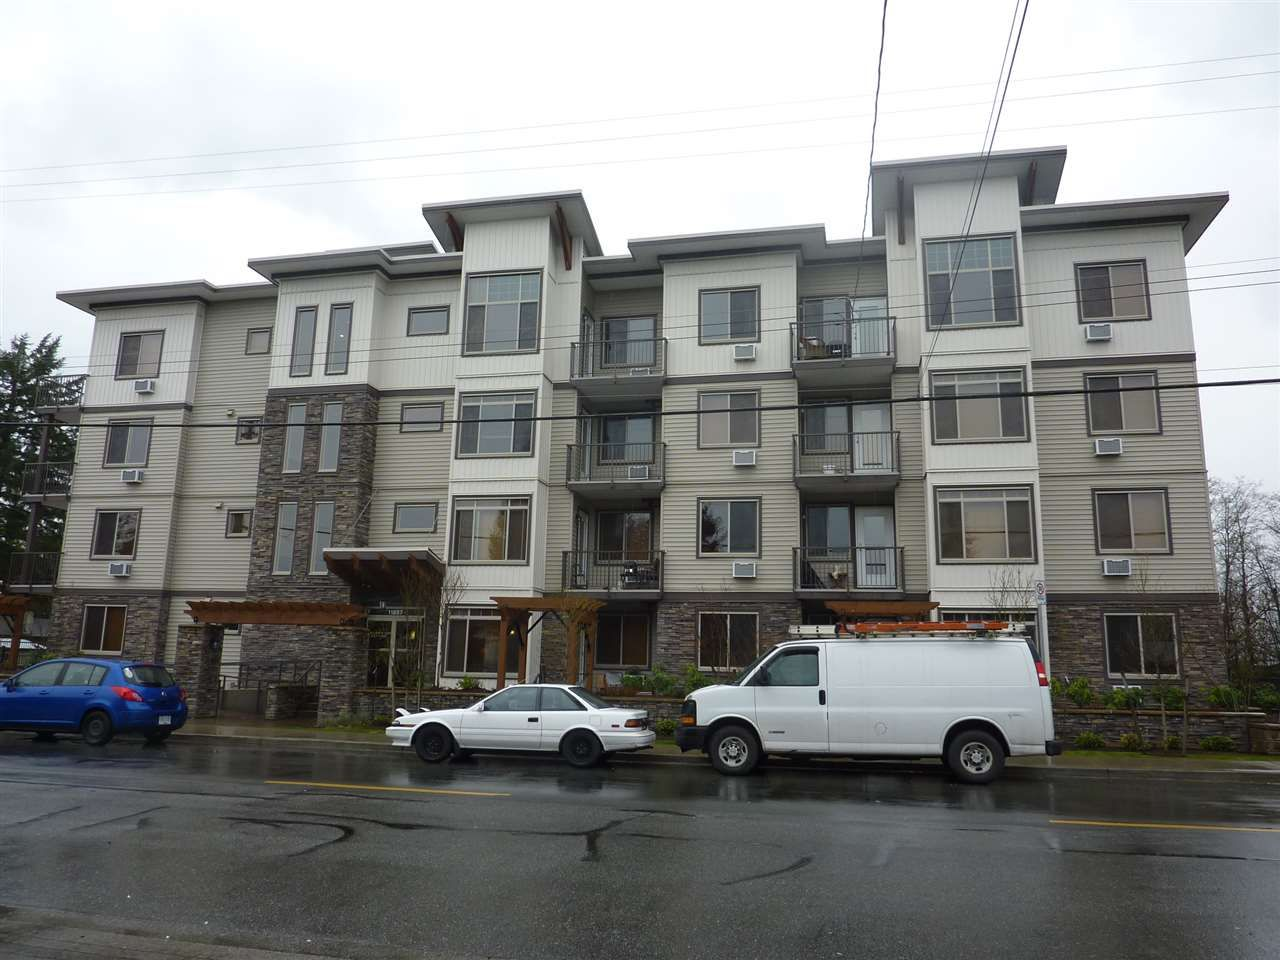 "Main Photo: 217 11887 BURNETT Street in Maple Ridge: East Central Condo for sale in ""WELLINGTON STATION"" : MLS®# R2125970"